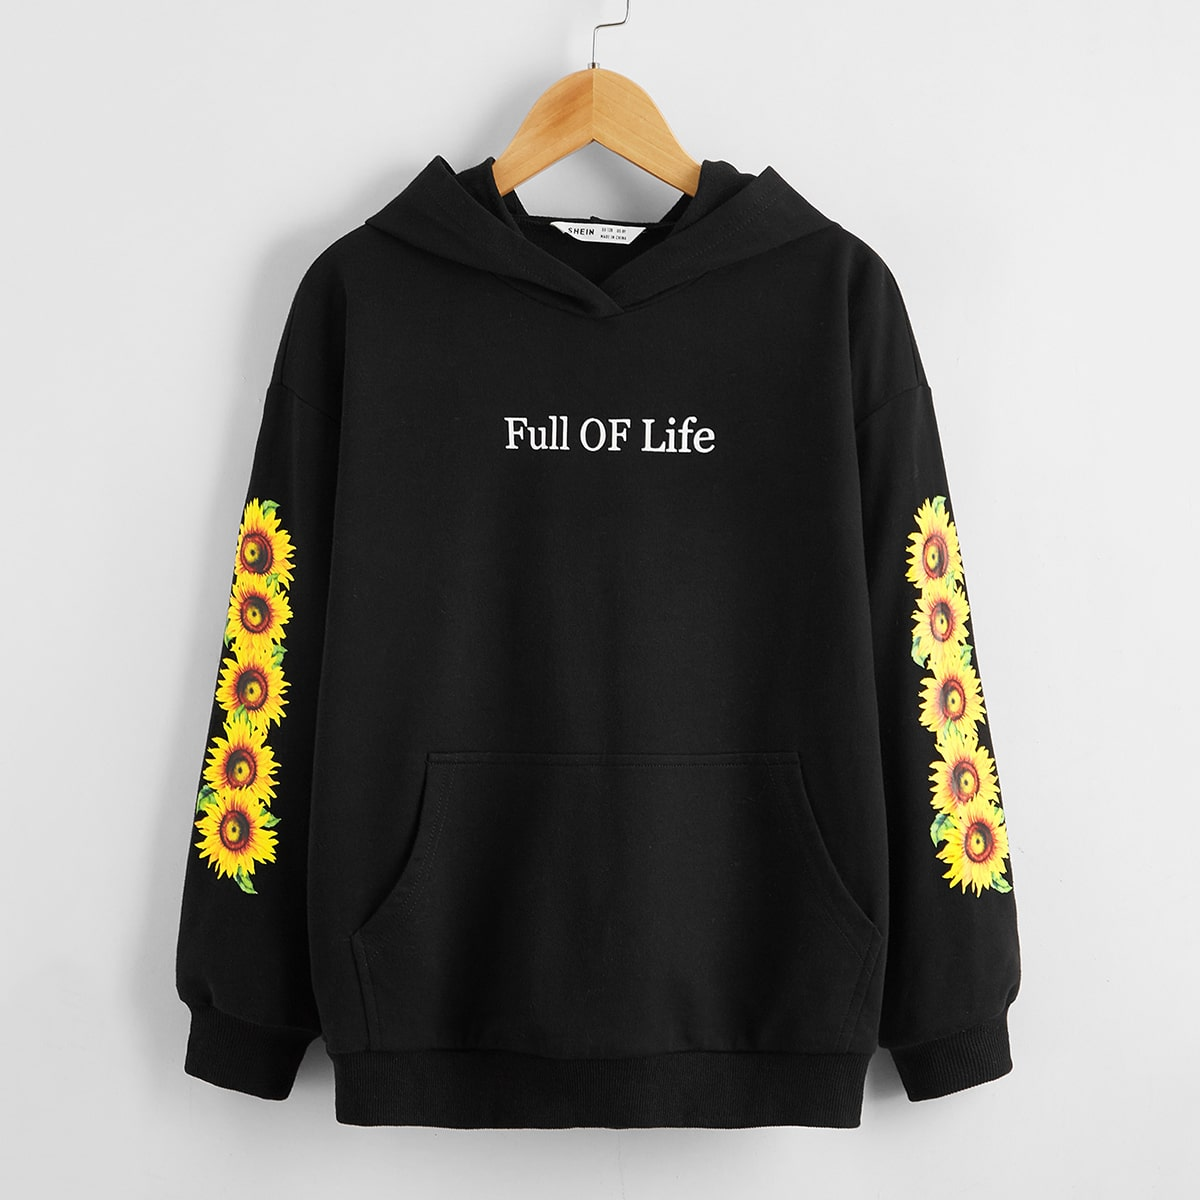 Girls Slogan and Sunflower Print Hoodie, SHEIN  - buy with discount